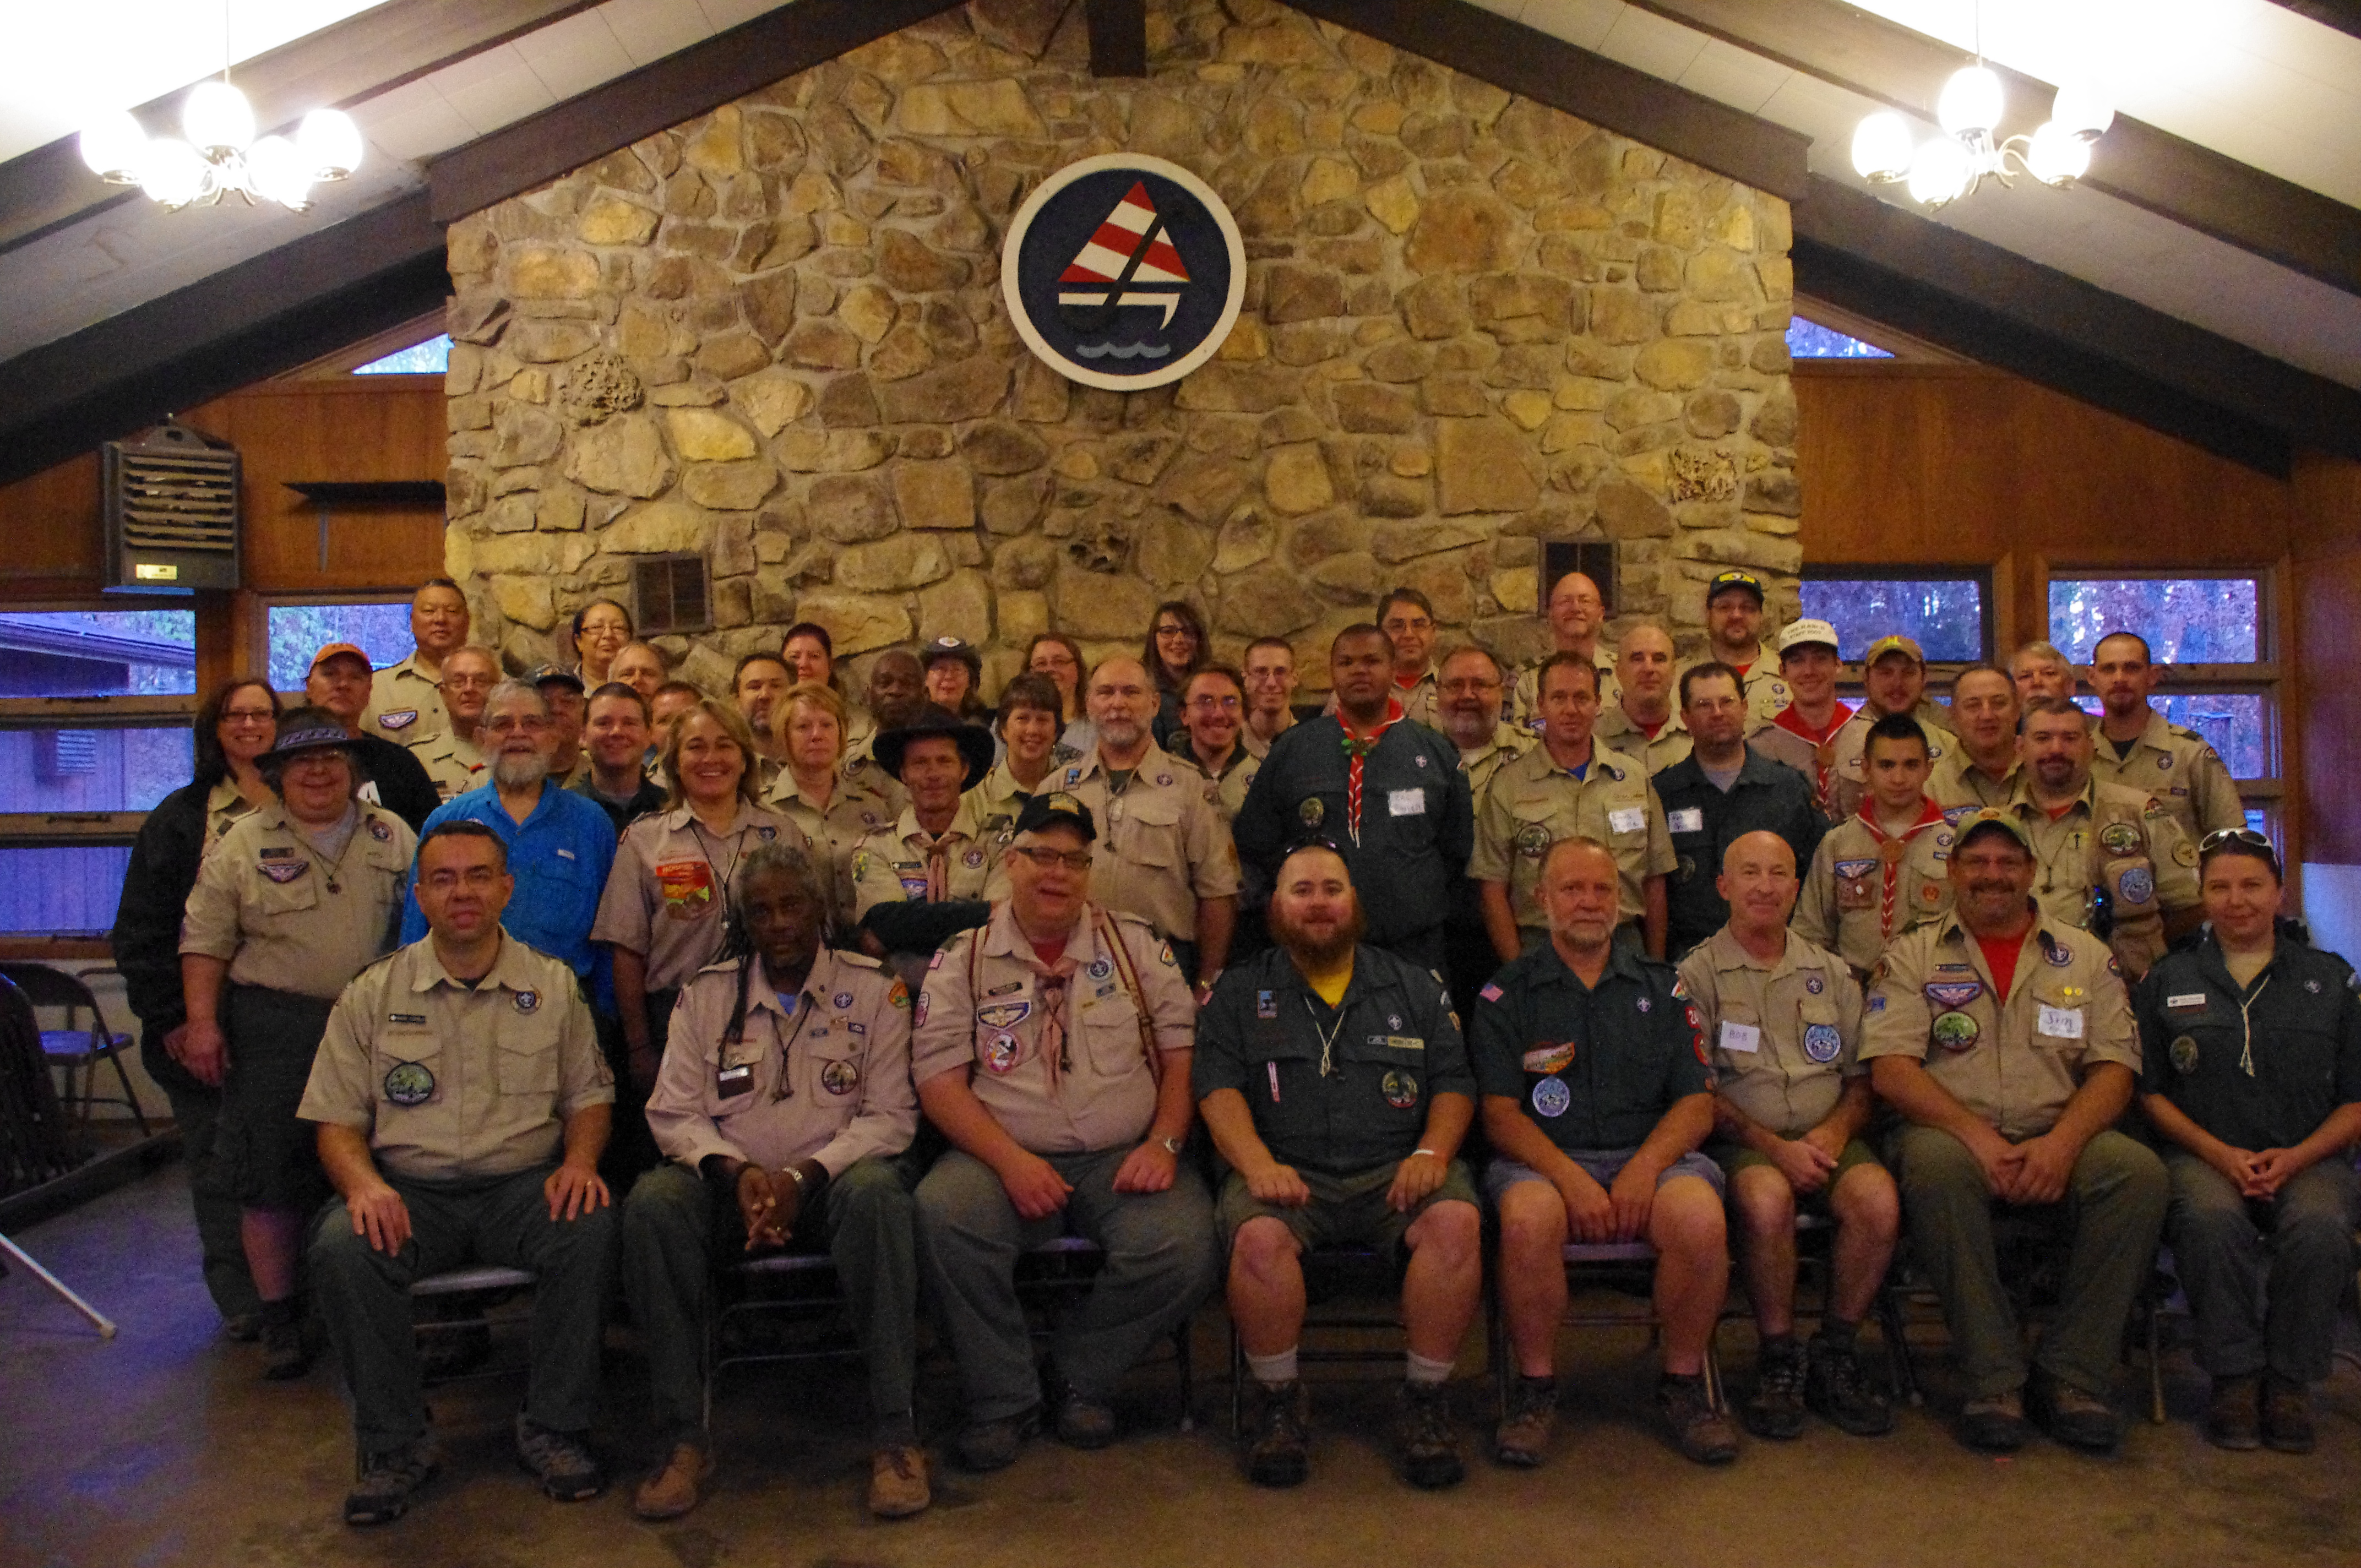 BSA Fishing - Certified Angling Instructors - Untitled page